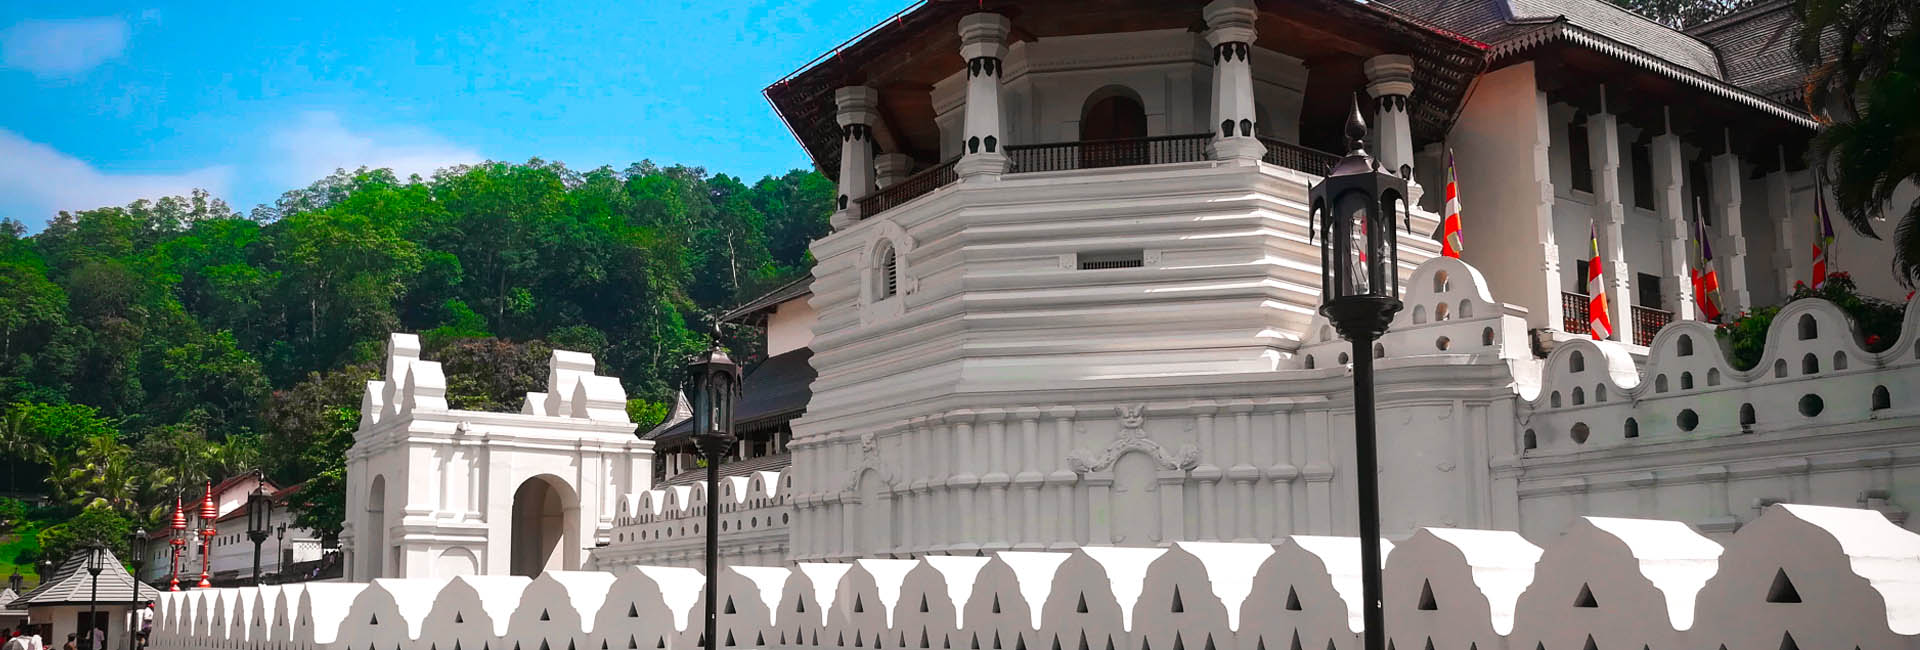 Day Tour to Pinnawala and Kandy | Rent a Tour Guide in Sri Lanka